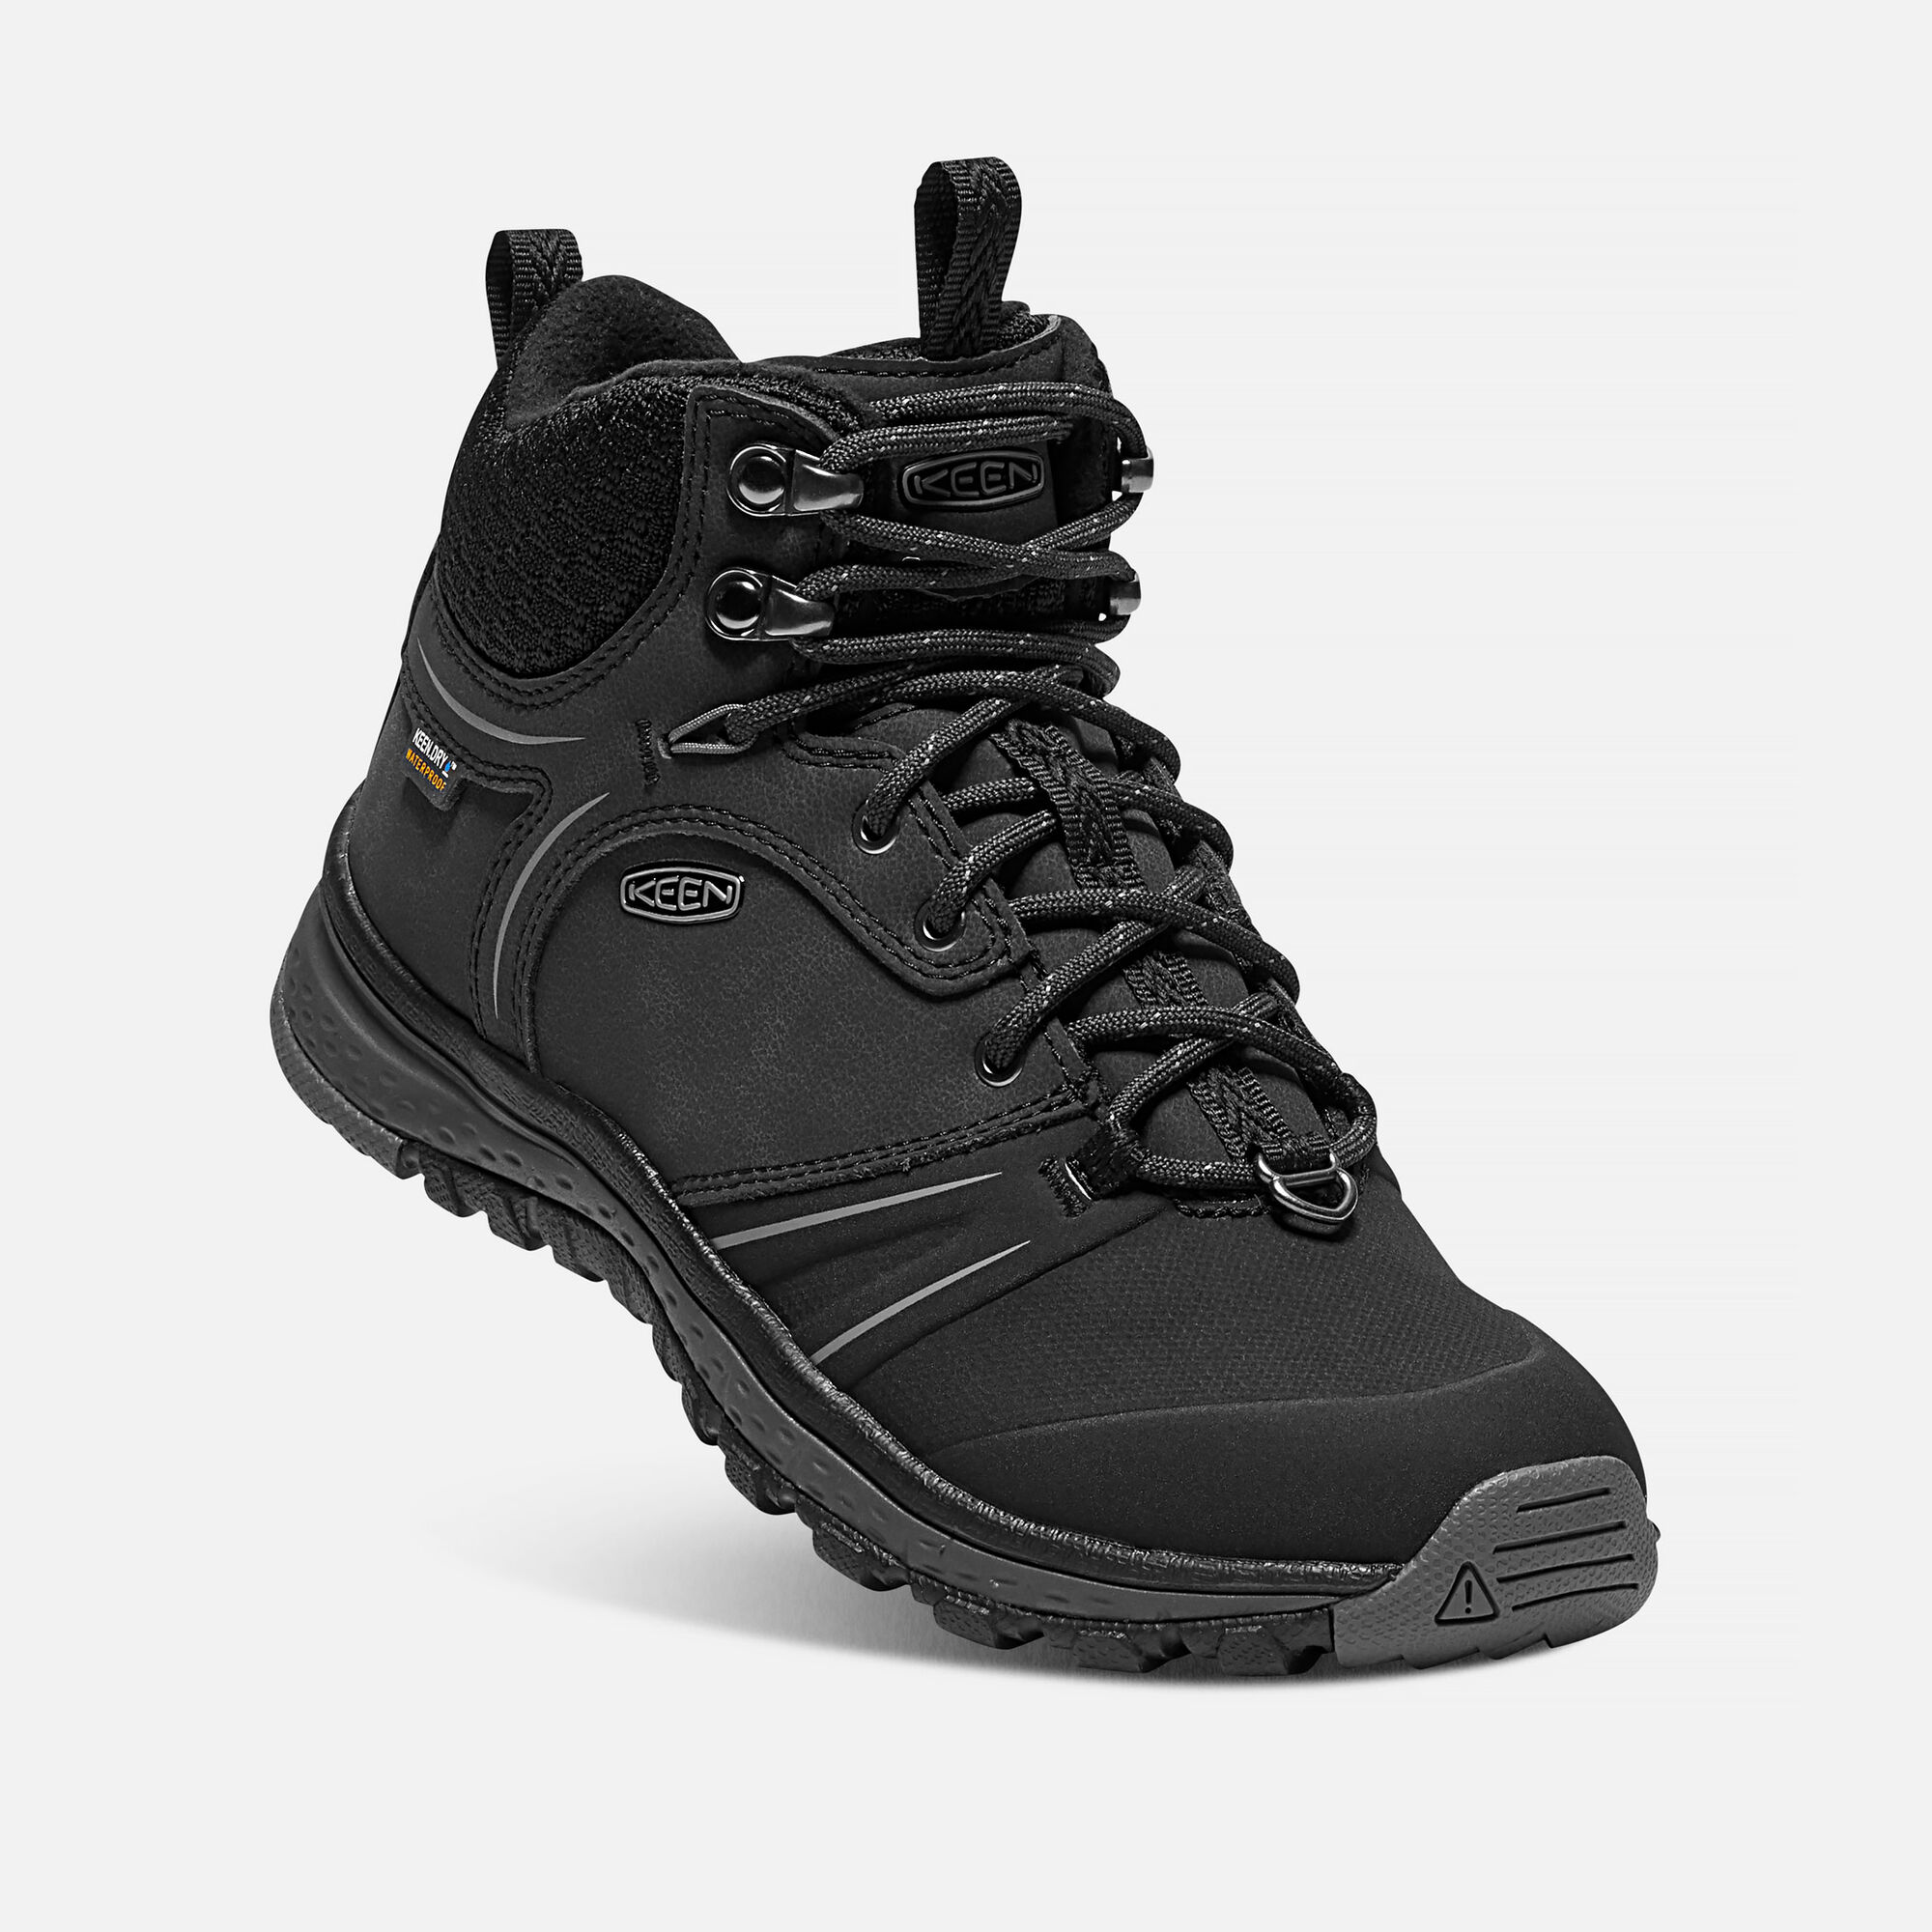 the most for story nast travel comforter cond walking boots shoes comfortable traveler